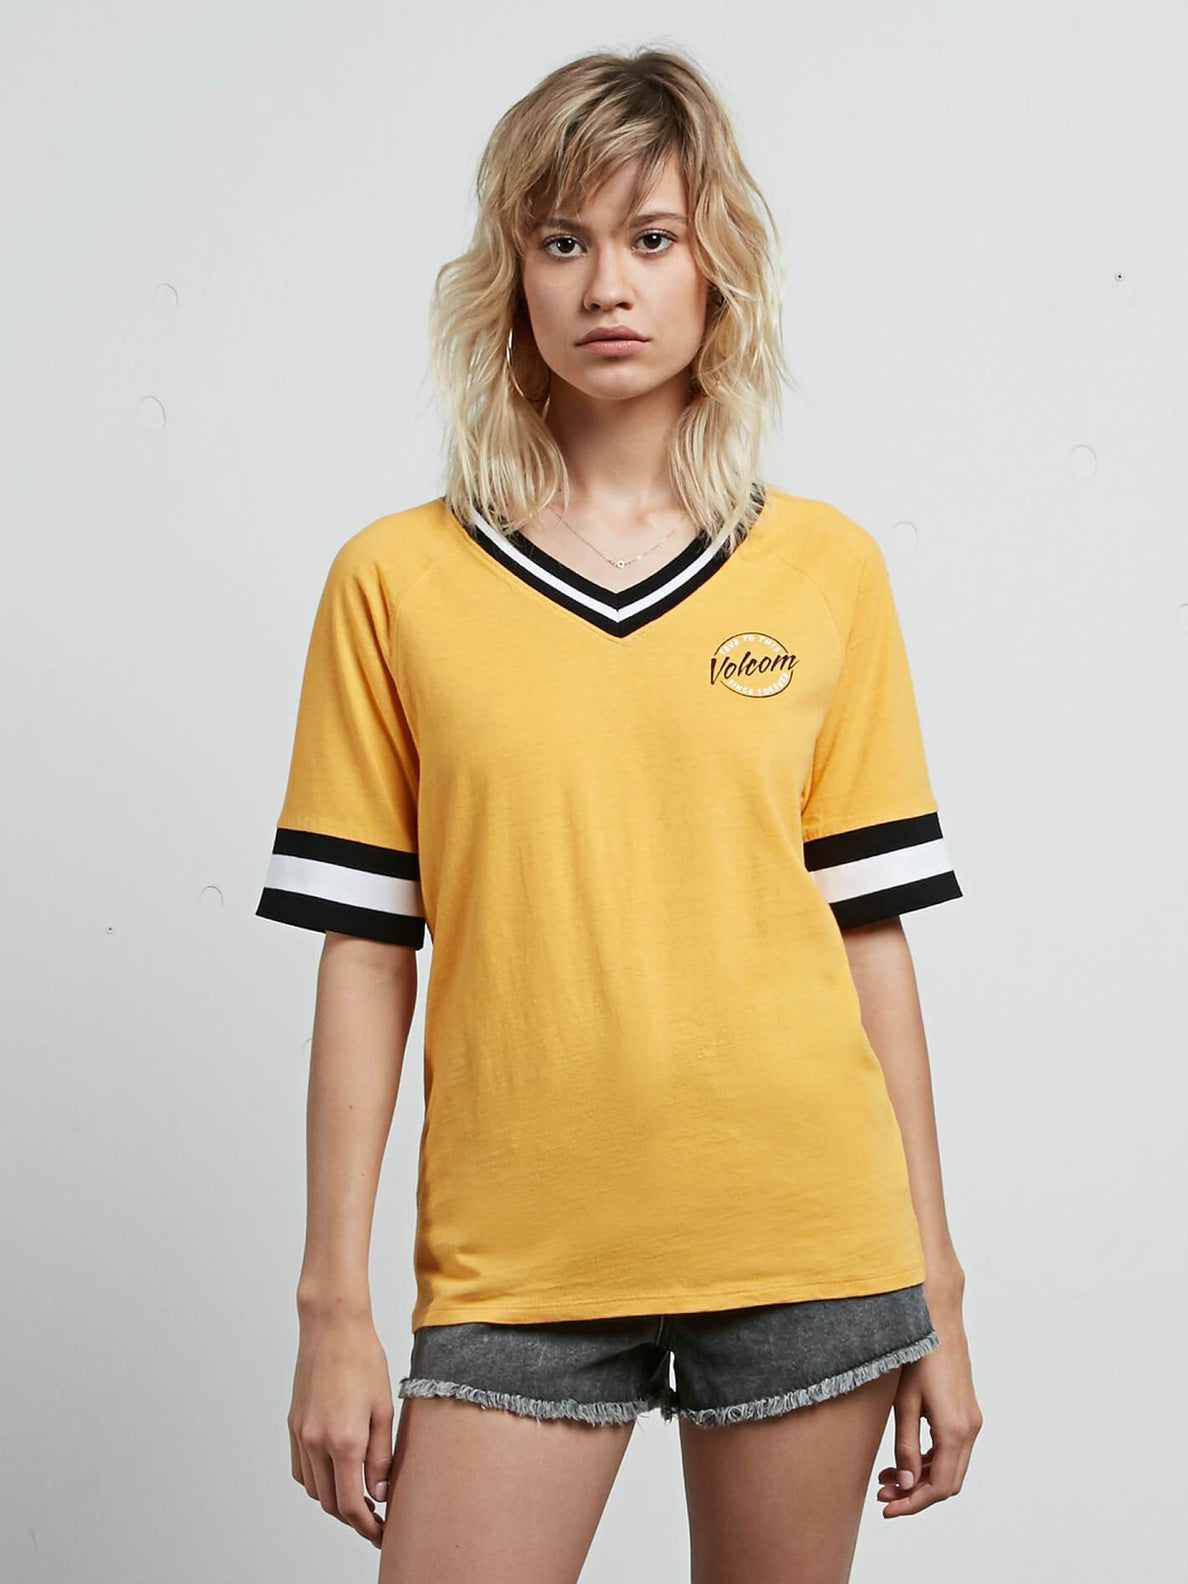 Outta Here Tee - Citrus Gold